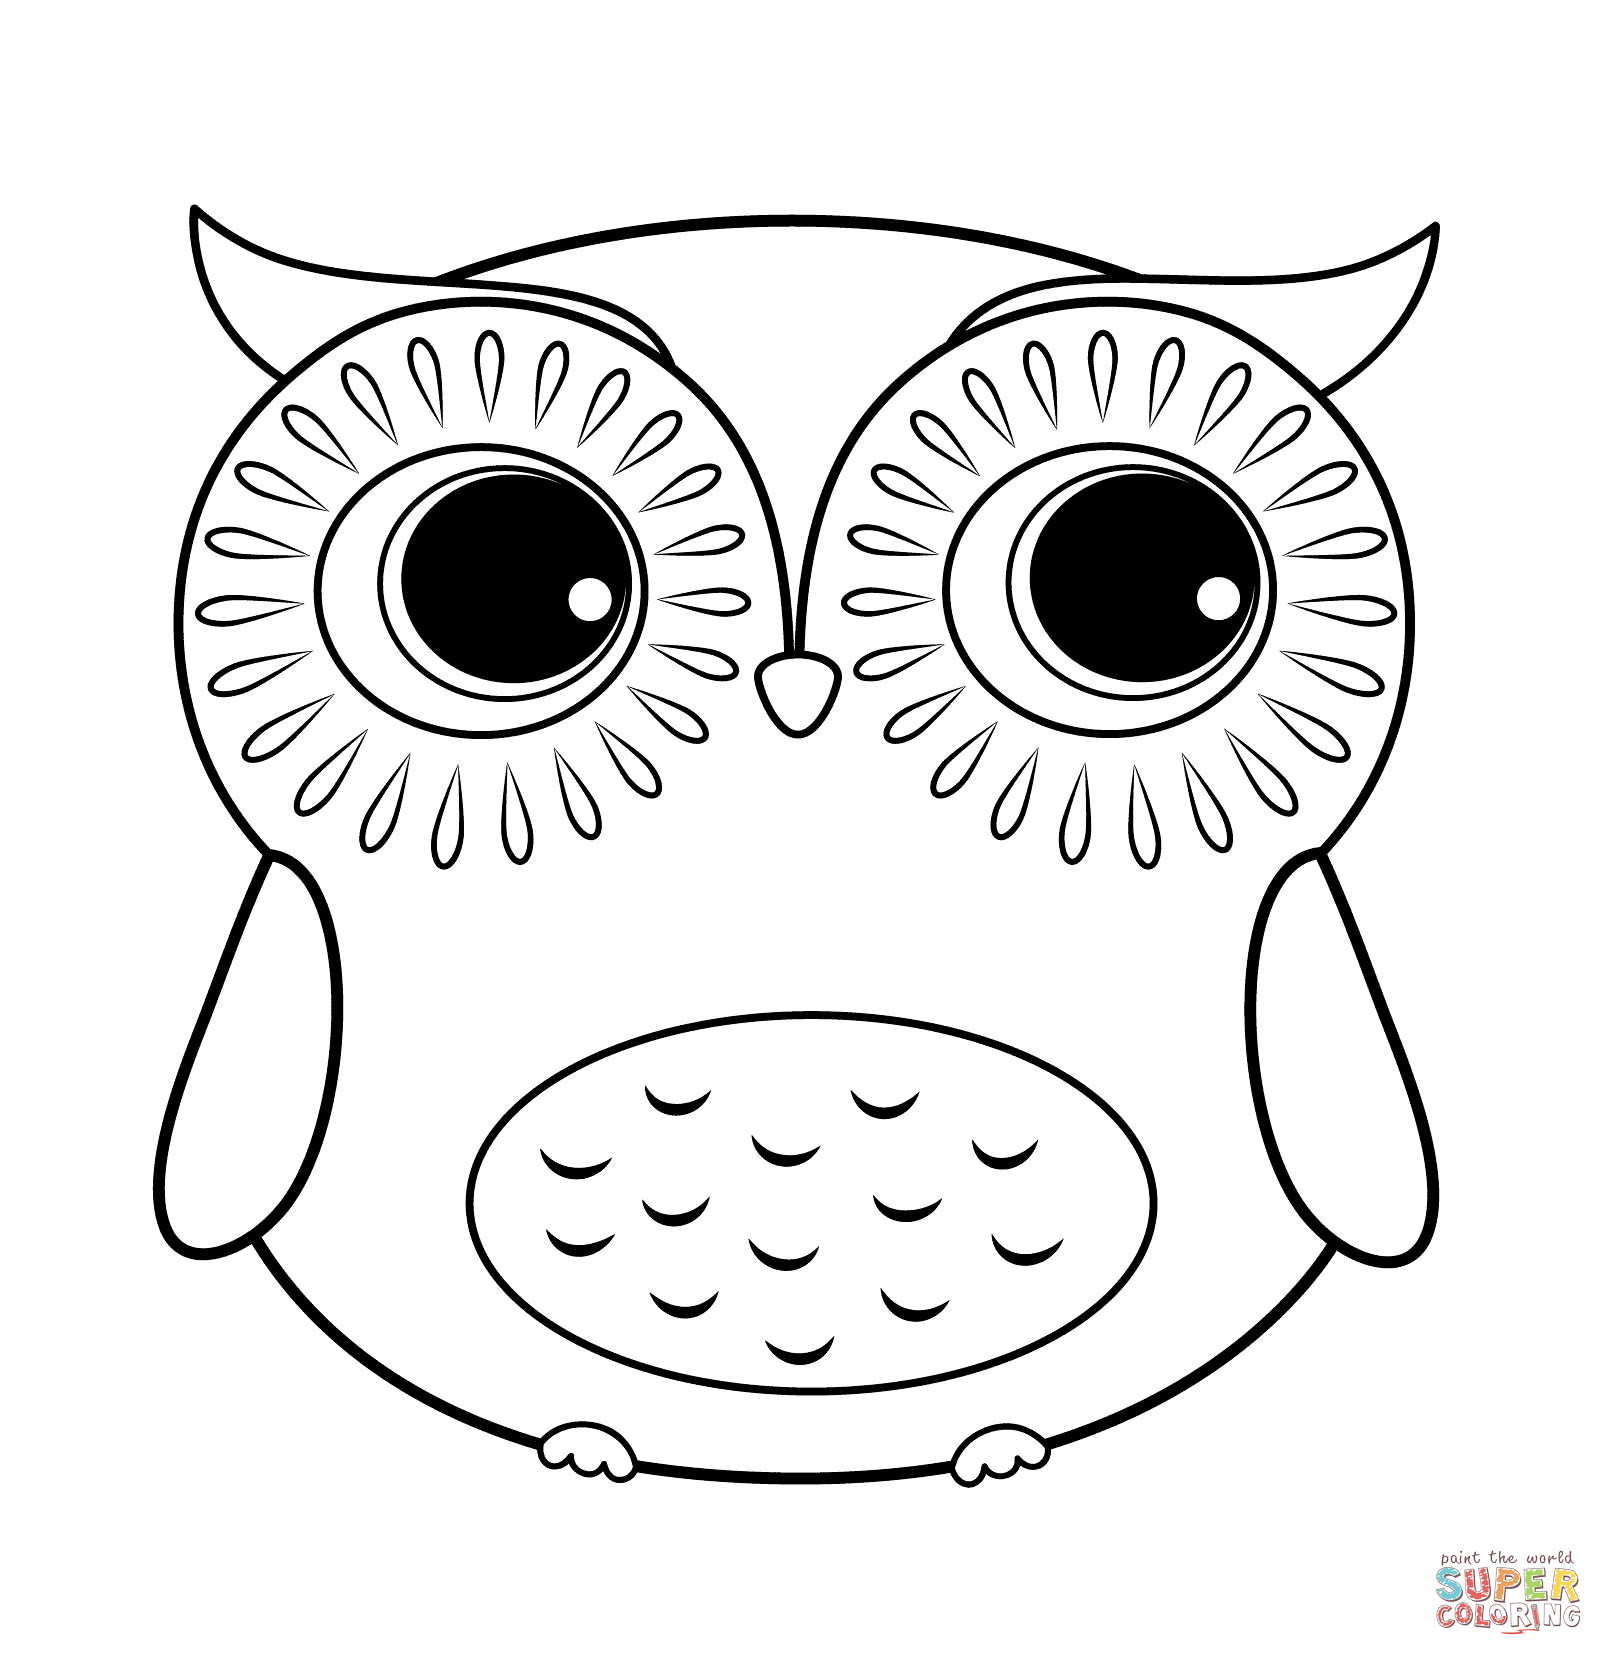 Printable Cute Owl Printable Owl Coloring Pages Novocom Top